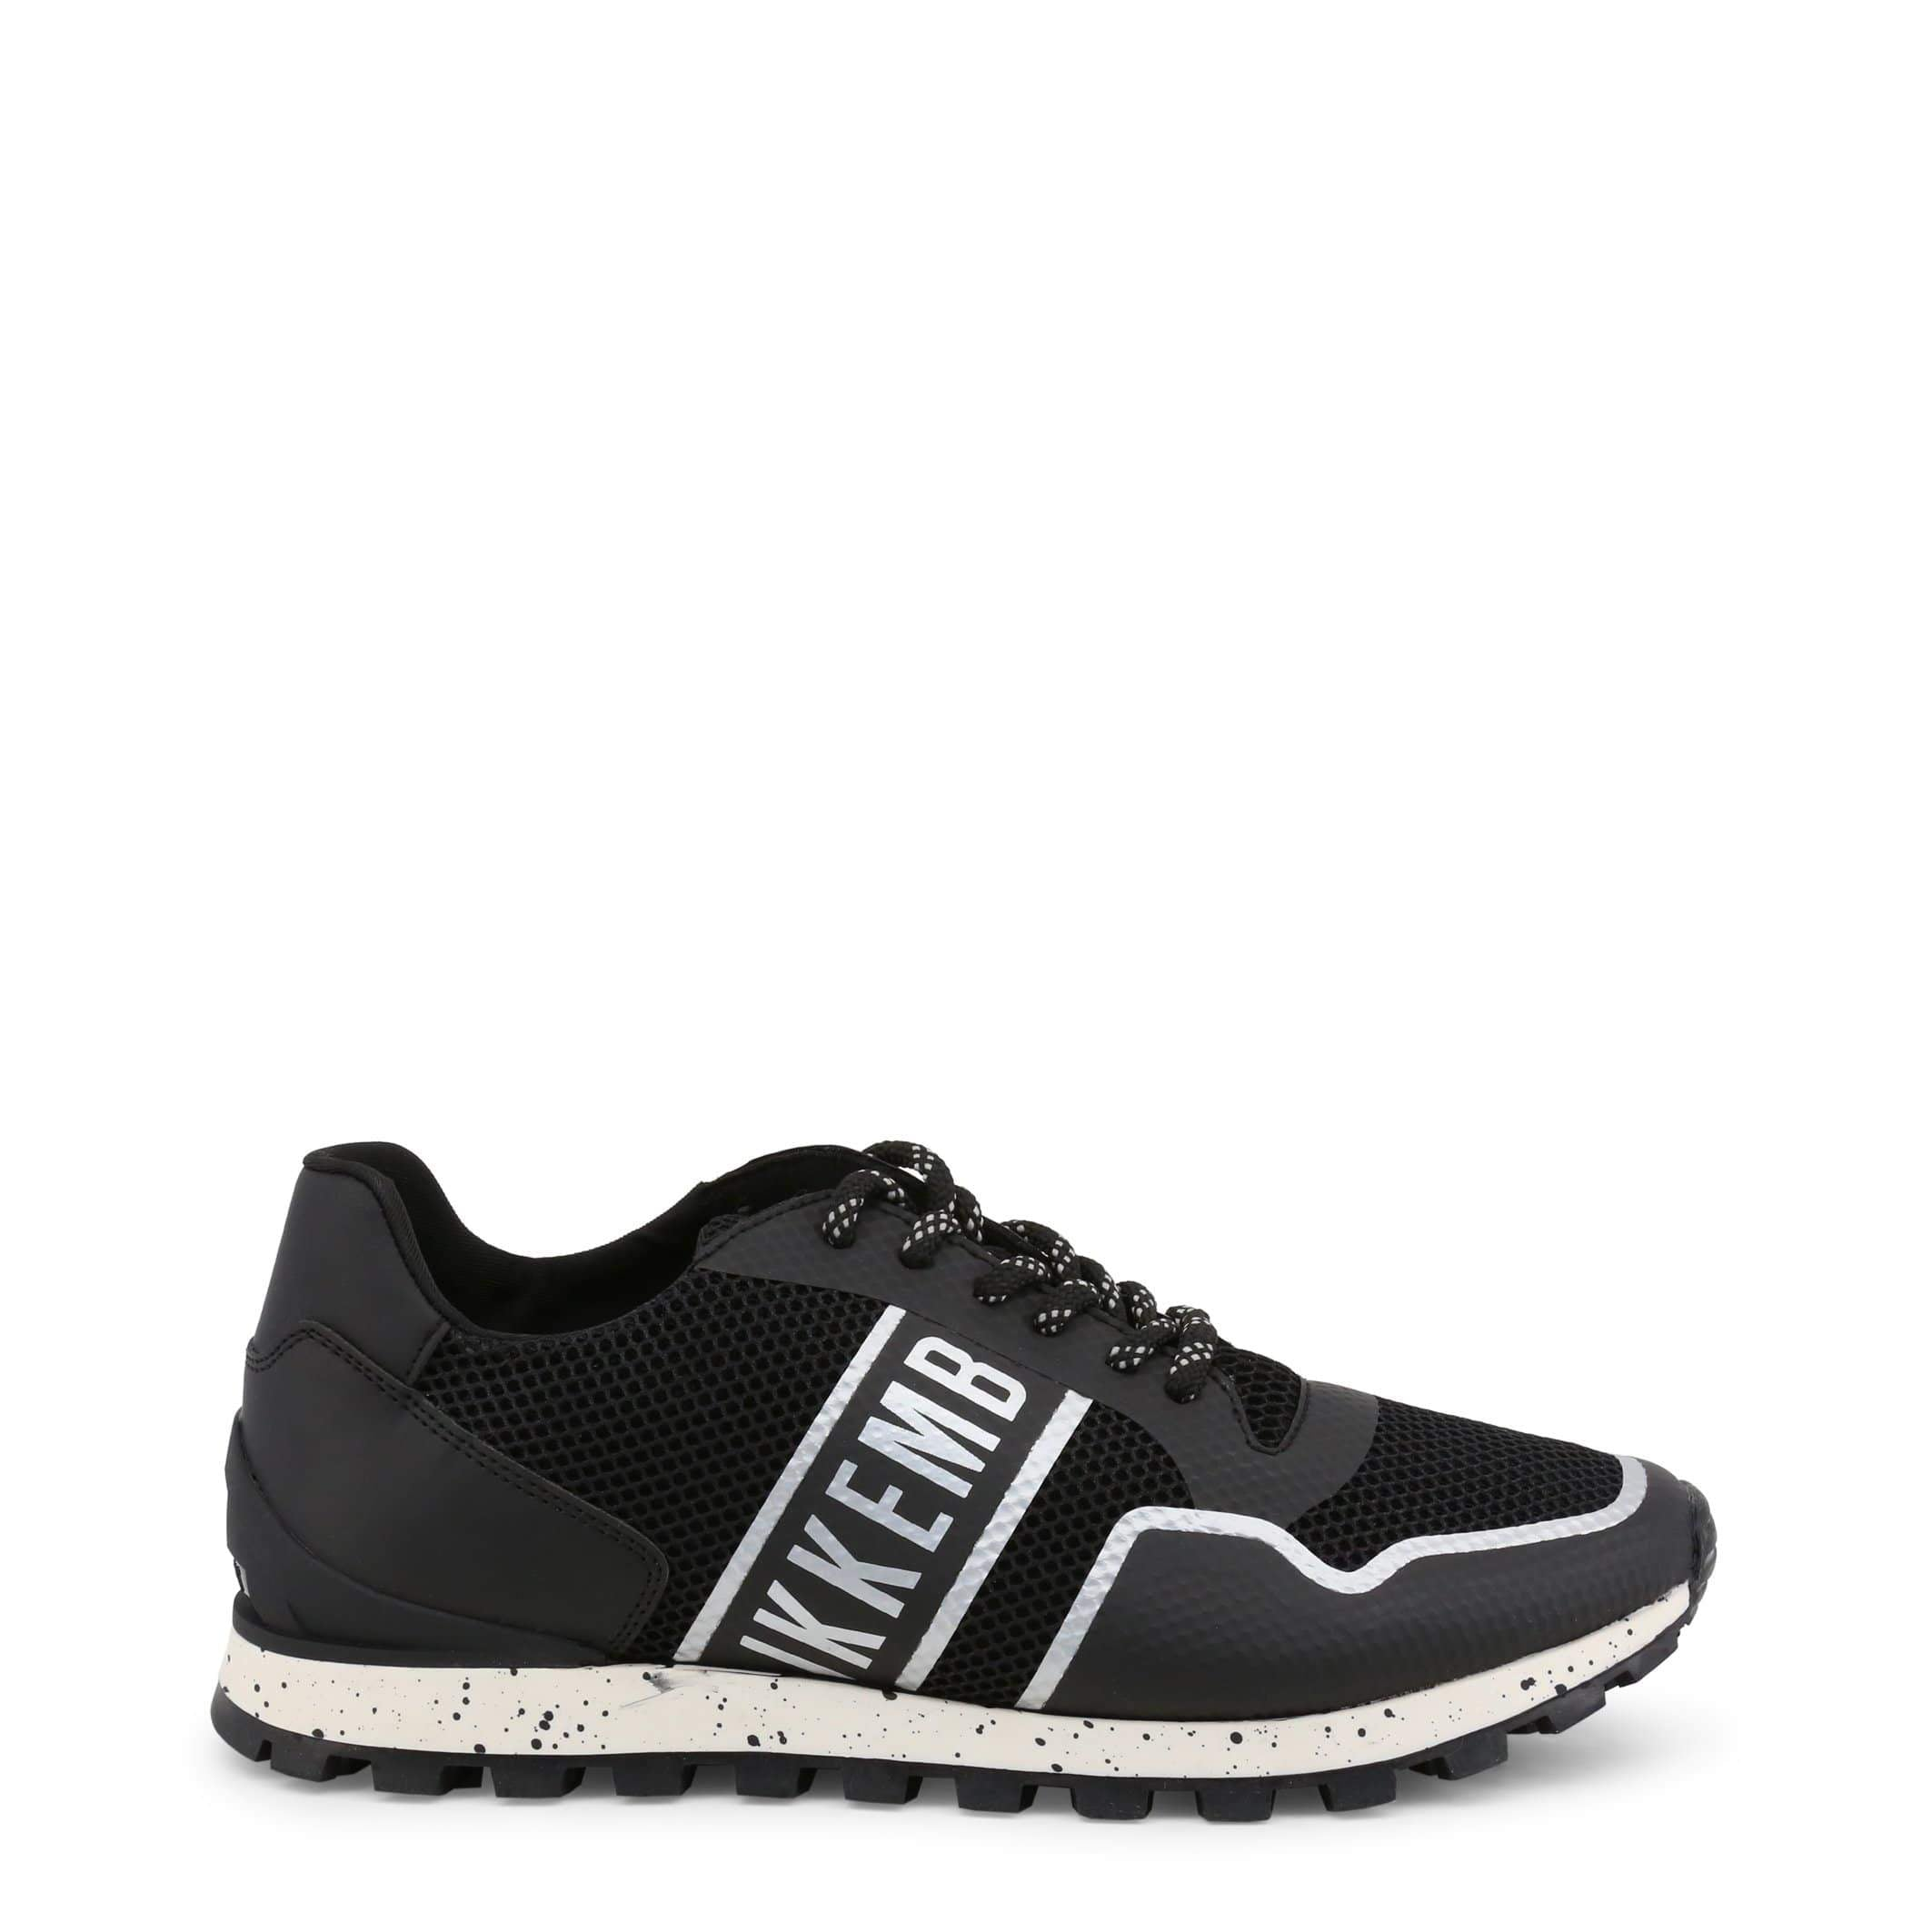 Bikkembergs Shoes Sneakers black / EU 46 Bikkembergs - FEND-ER_2084